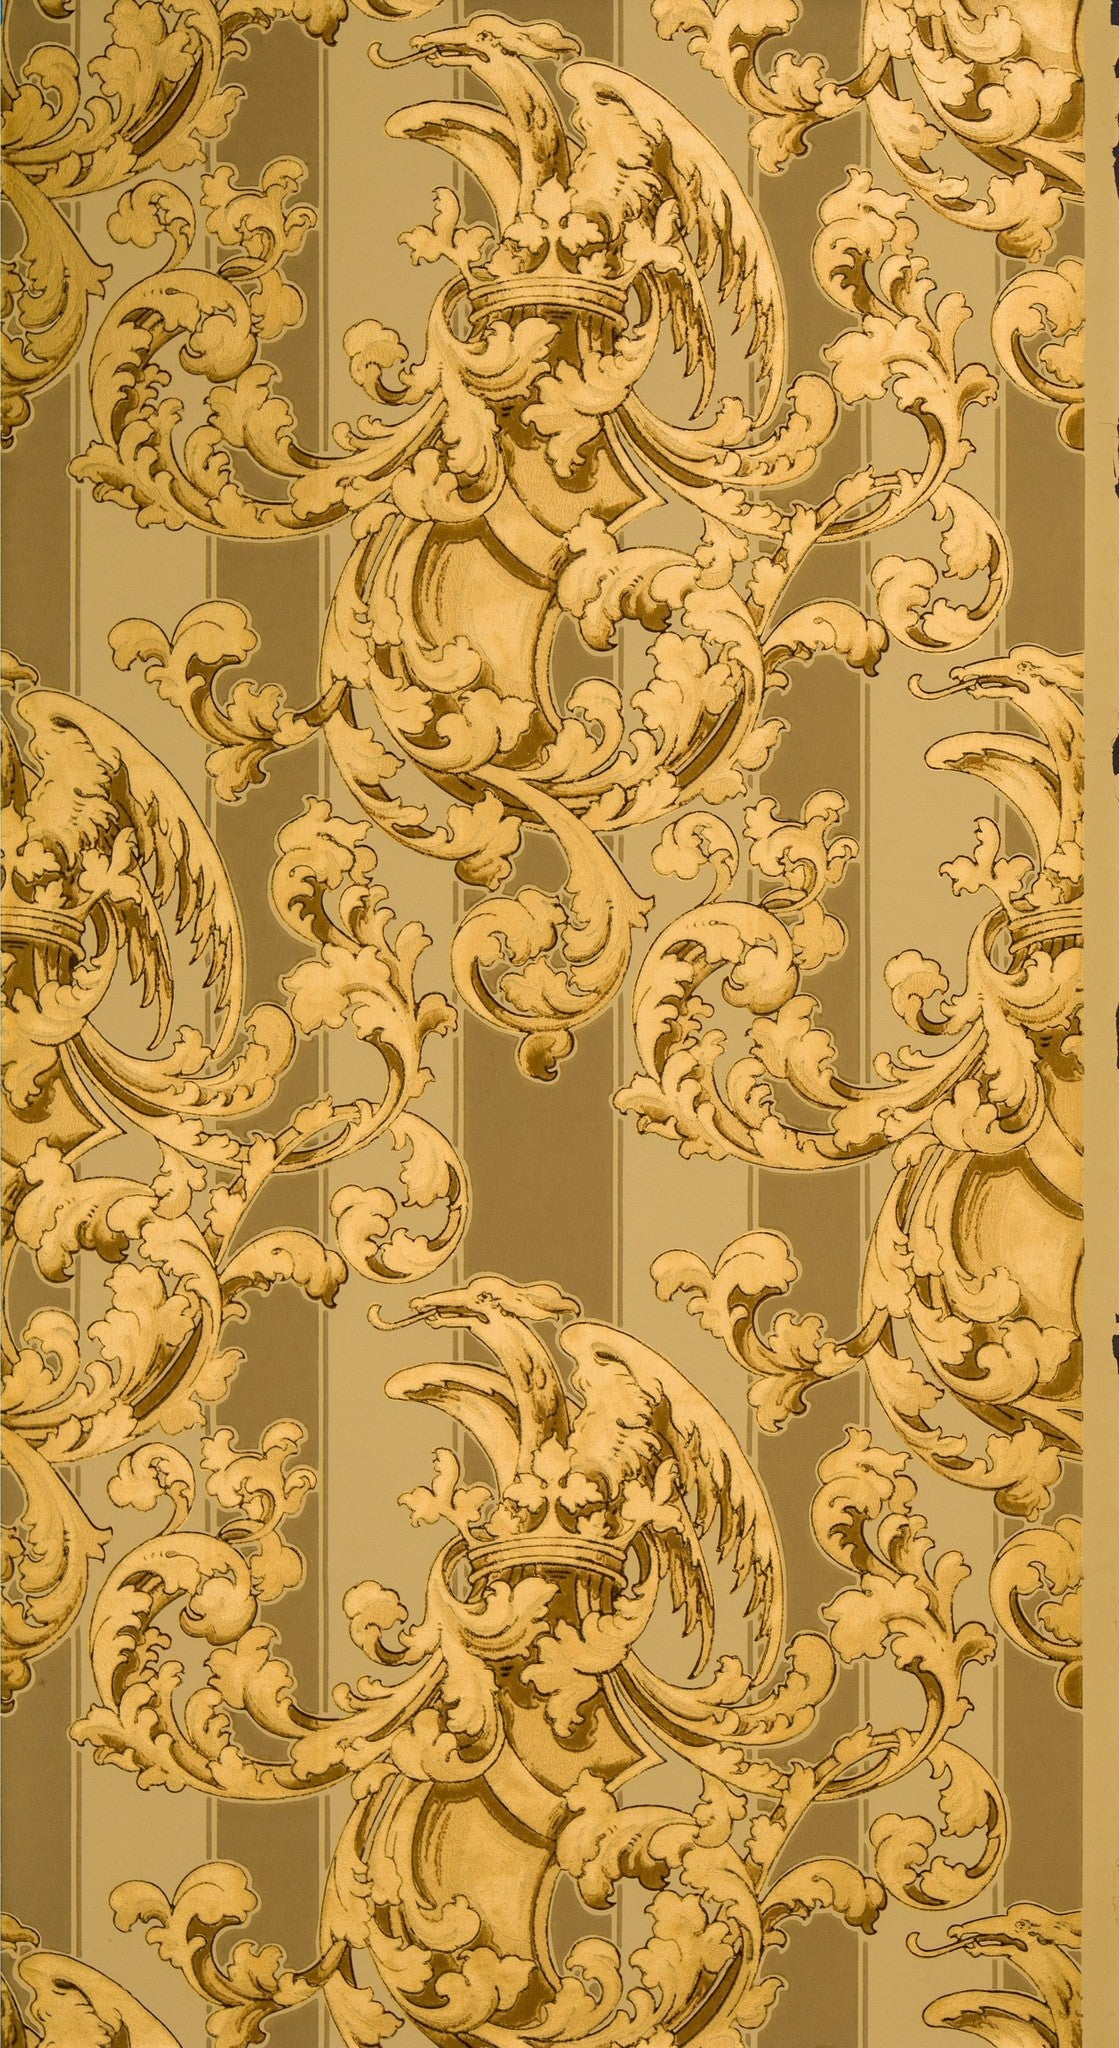 Shield, Crown and Griffin Amid Gilt Scrolls - Antique Wallpaper Remnant